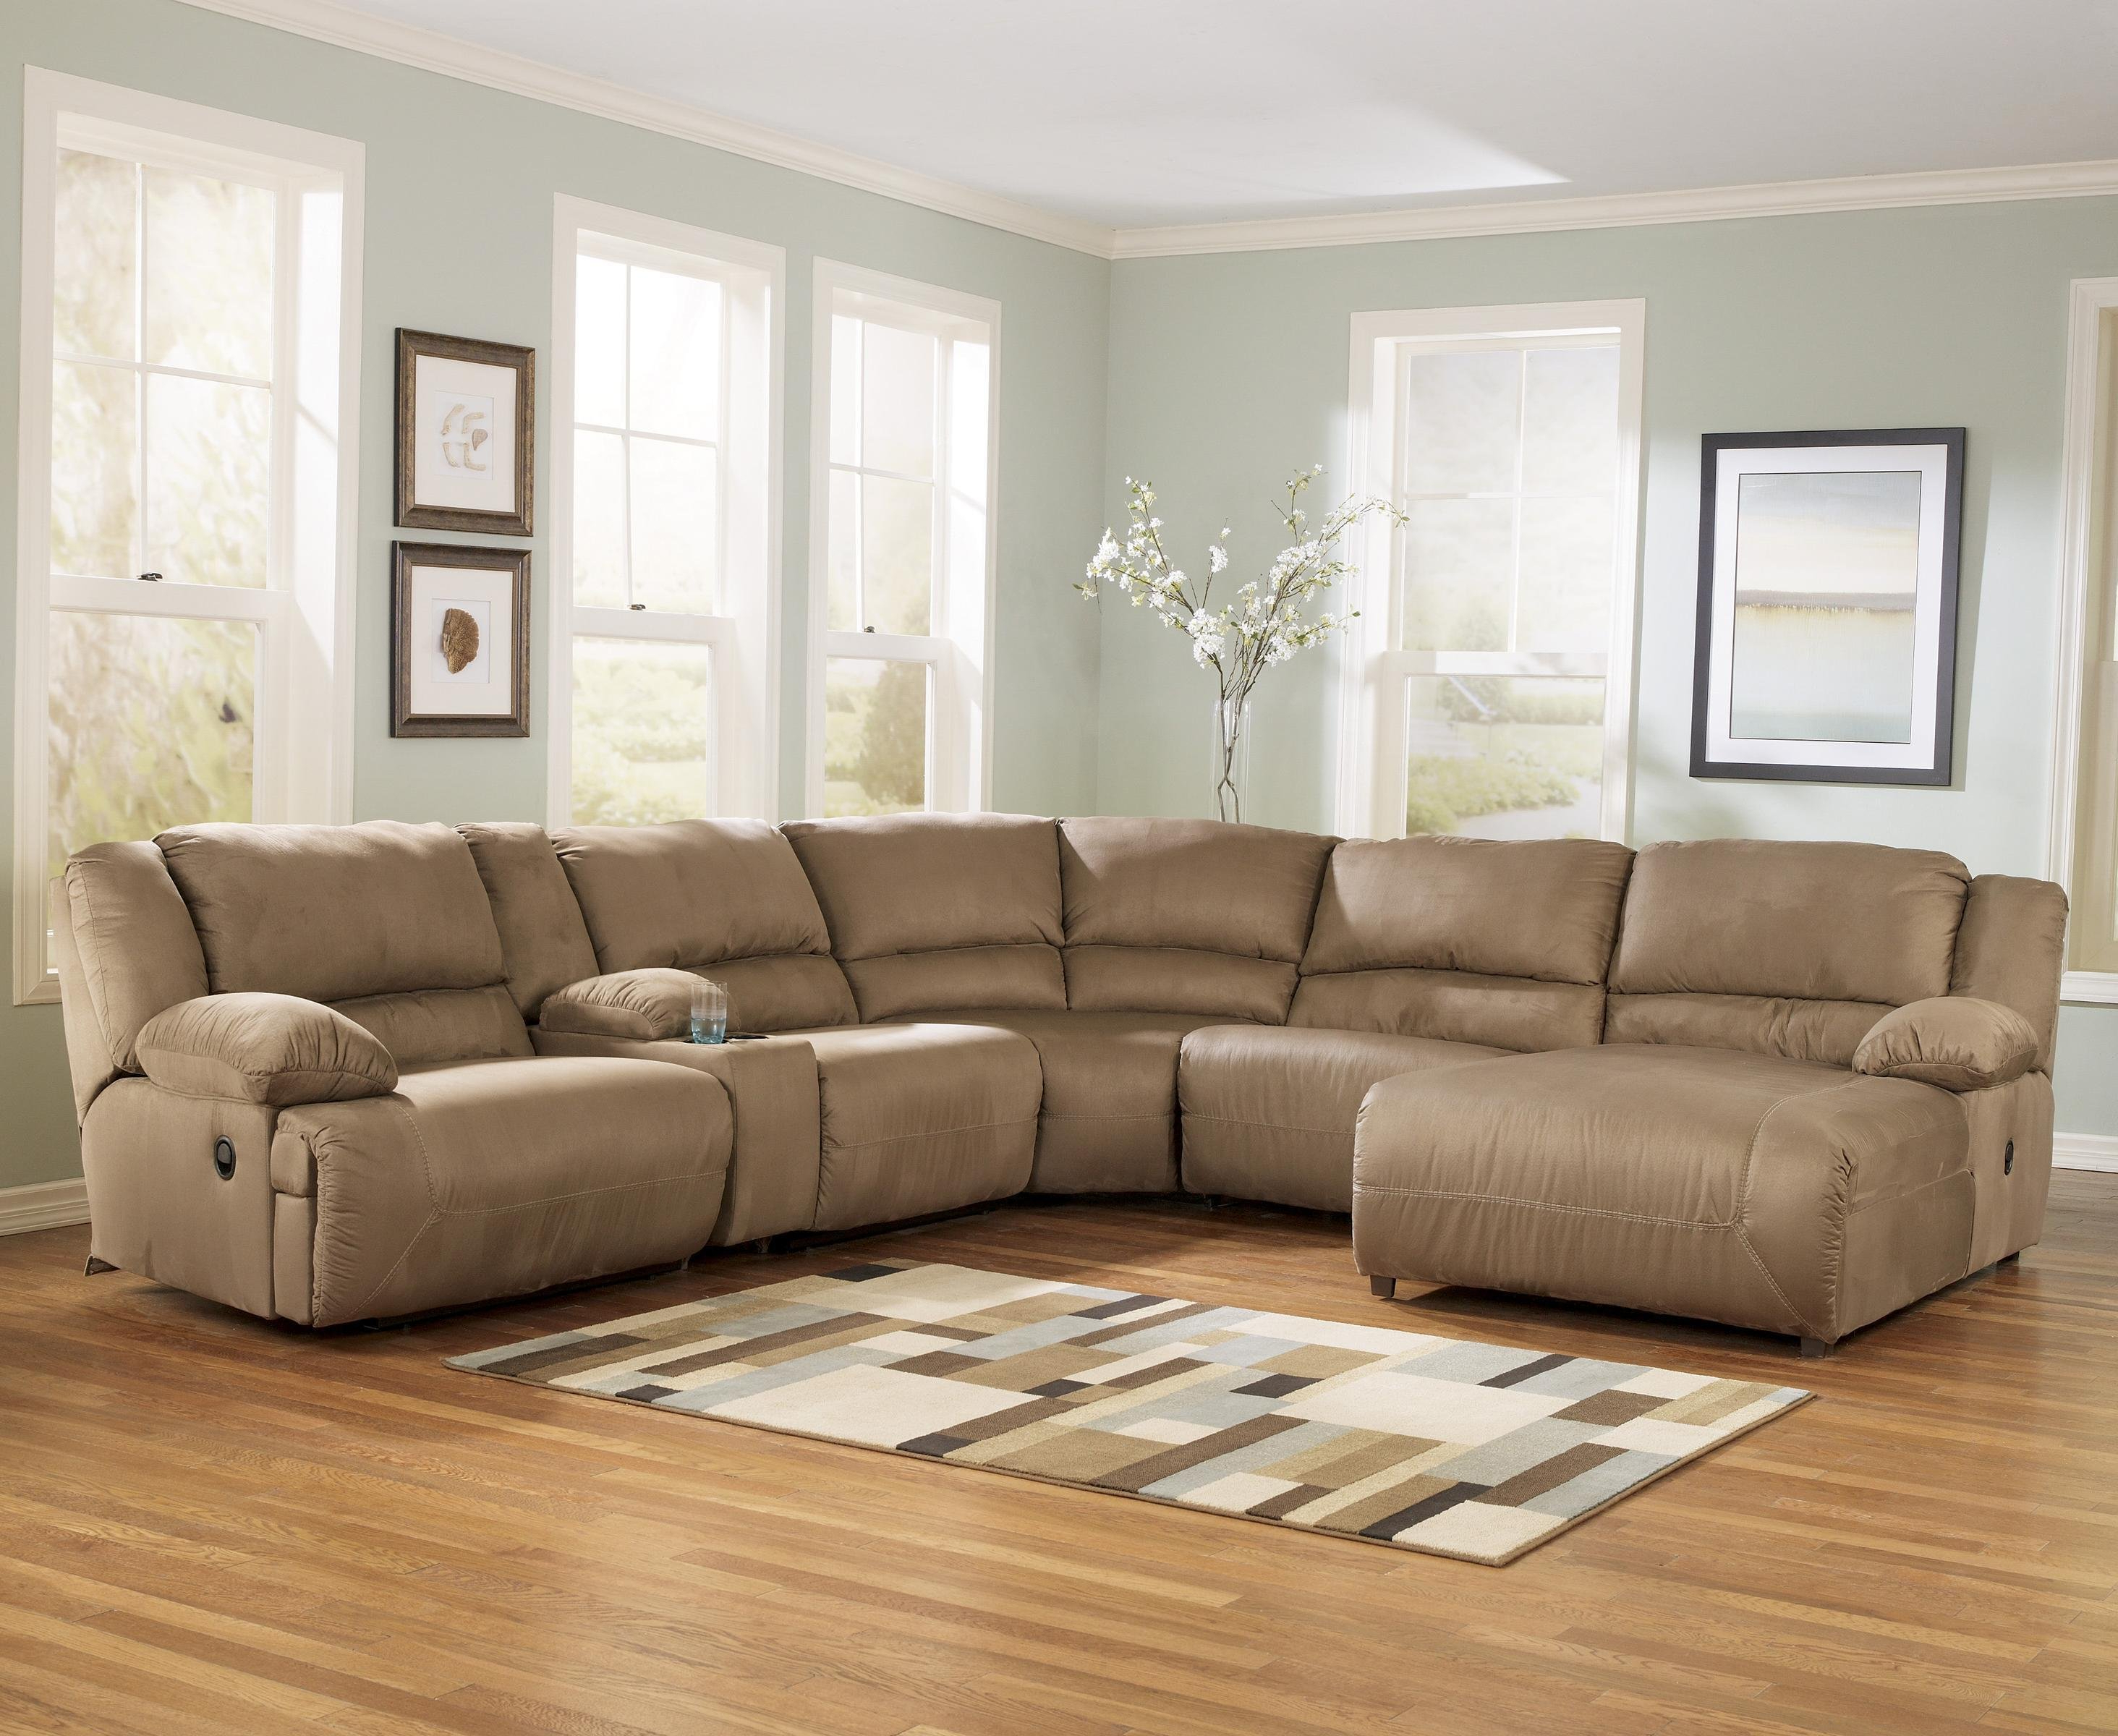 Favorite Calder Grey 6 Piece Manual Reclining Sectionals For Fabulous 25 Power Reclining Sectional Sofa Favorite (Gallery 4 of 20)